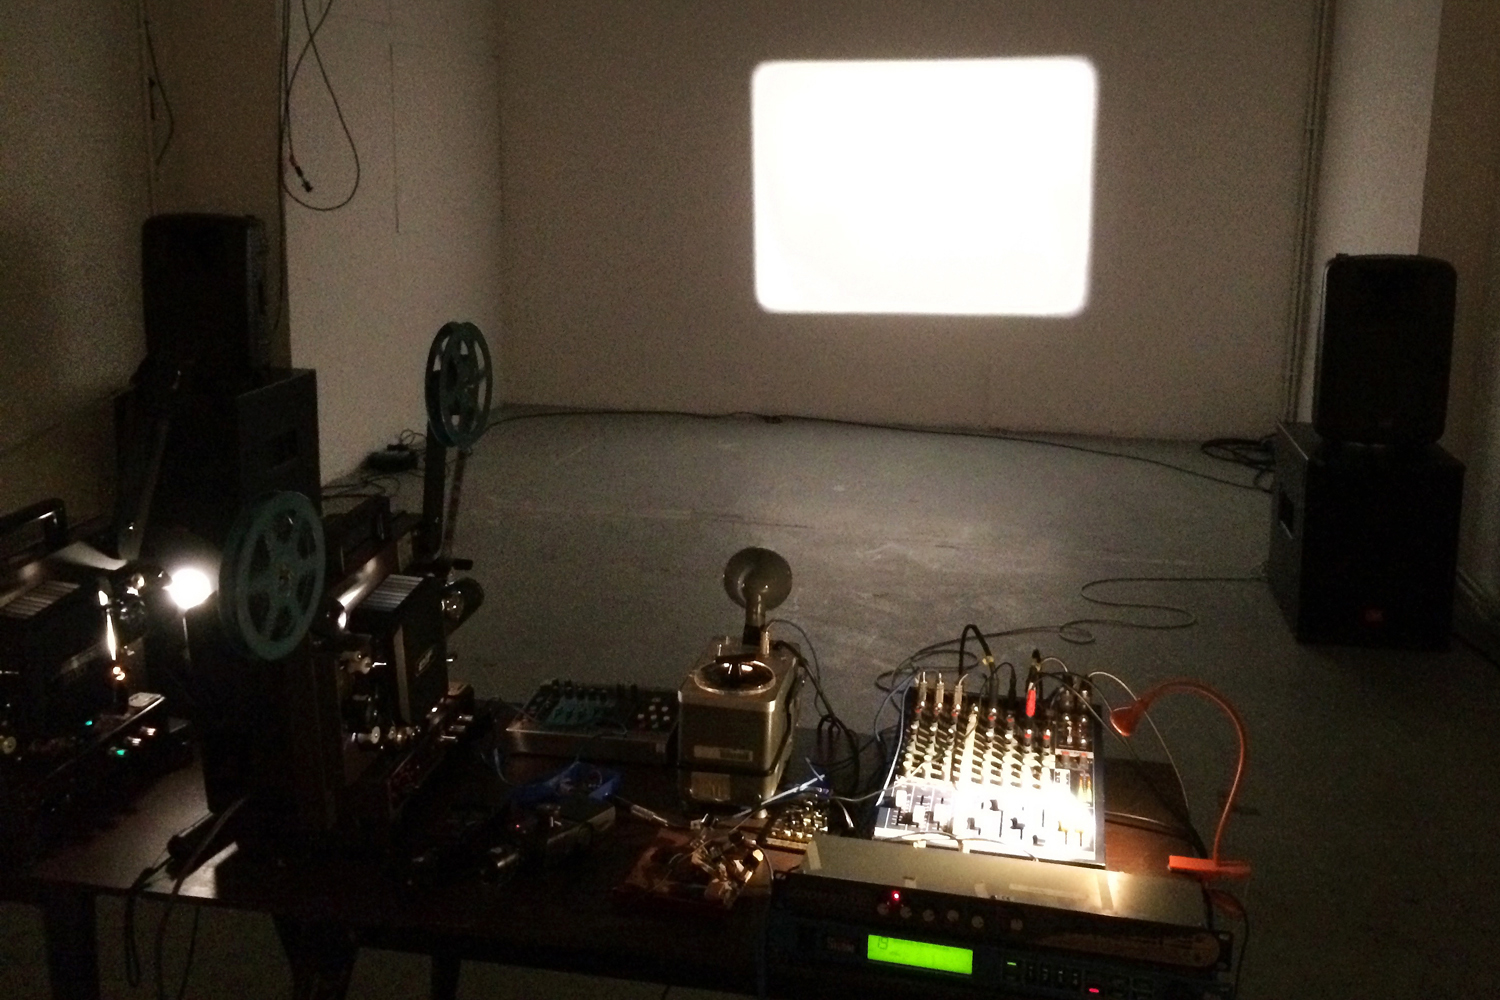 Studio Sounds - Sonified productions from material, electric and vocal investigations informed by the experience and form of live performance.